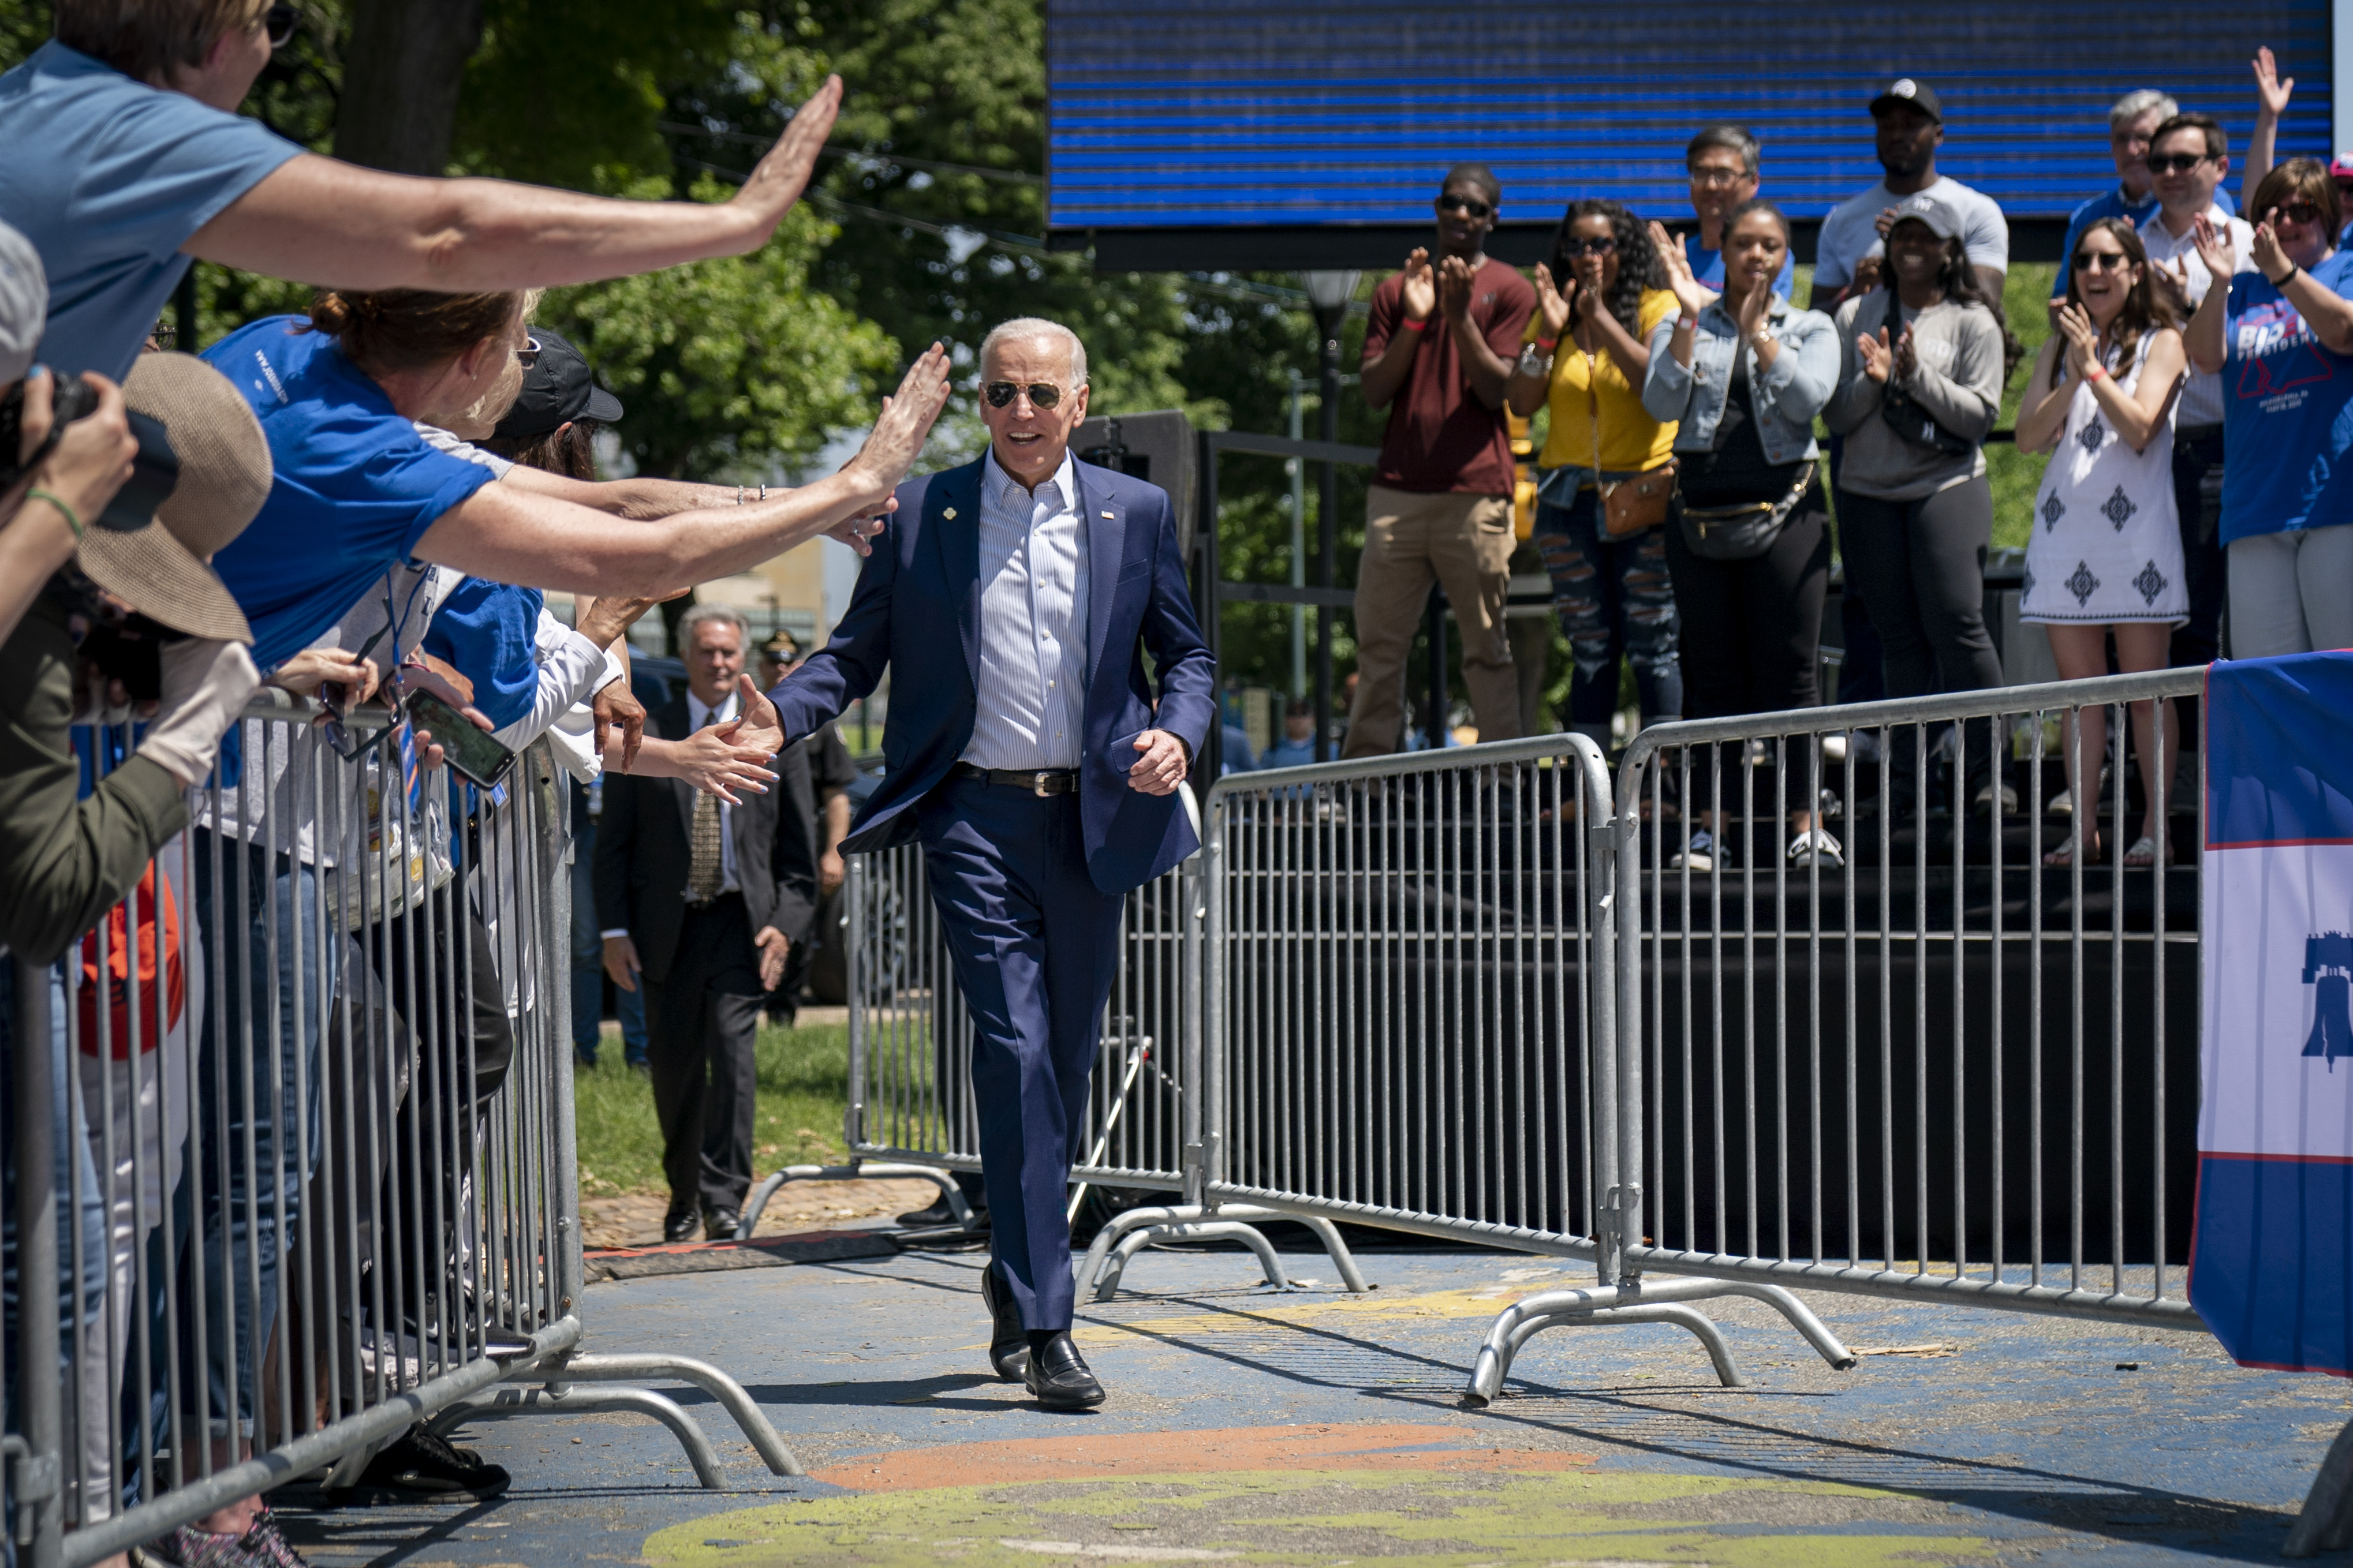 PHILADELPHIA, PA - MAY 18: Democratic presidential candidate, former U.S. Vice President Joe Biden arrives for a campaign kickoff rally, May 18, 2019 in Philadelphia, Pennsylvania. Since Biden announced his candidacy in late April, he has taken the top spot in all polls of the sprawling Democratic primary field. Biden's rally on Saturday was his first large-scale campaign rally after doing smaller events in Iowa and New Hampshire in the past few weeks. (Photo by Drew Angerer/Getty Images)